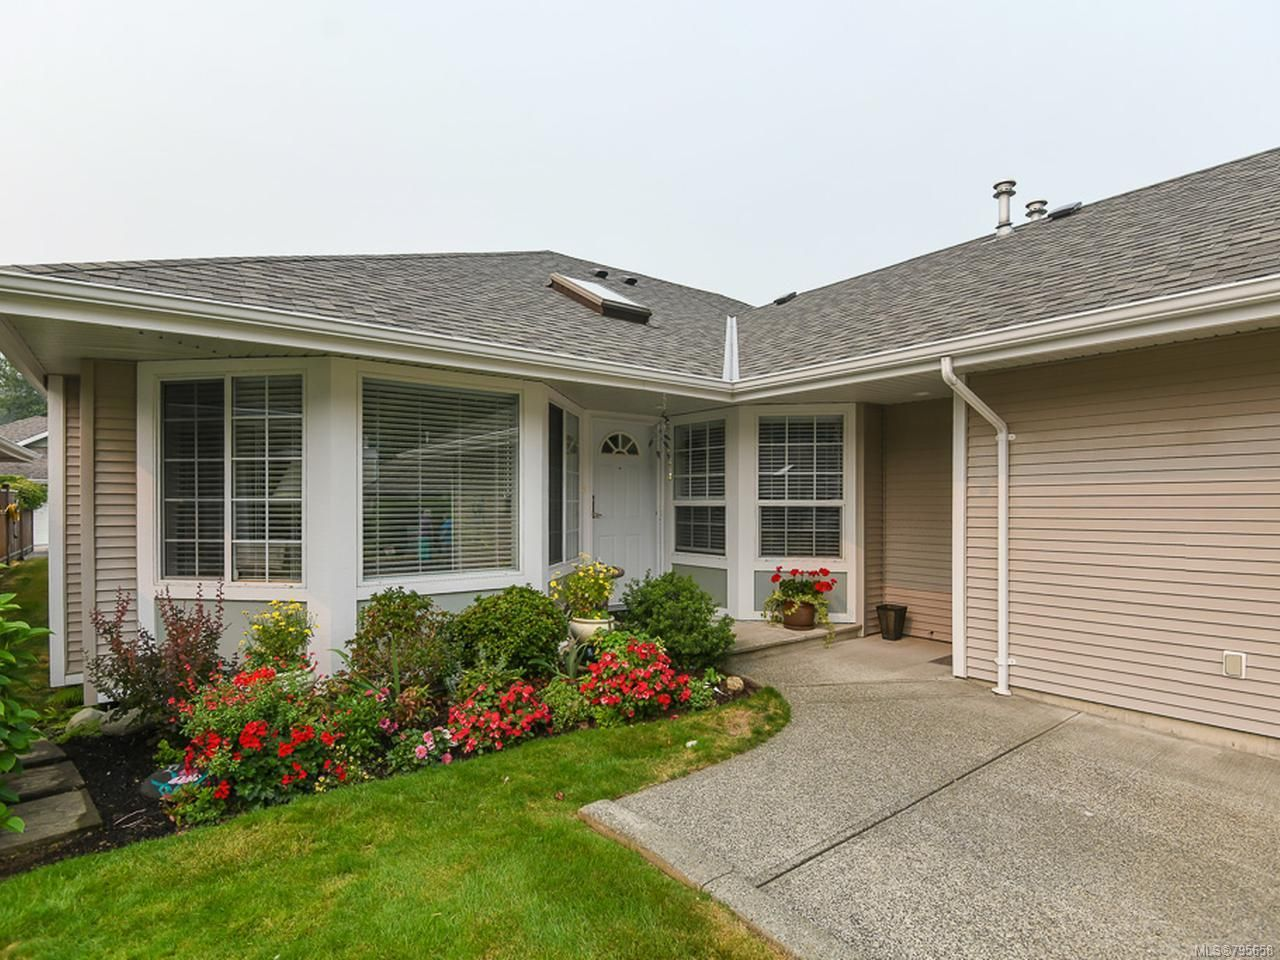 Main Photo: 16 2010 20TH STREET in COURTENAY: CV Courtenay City Row/Townhouse for sale (Comox Valley)  : MLS®# 795658